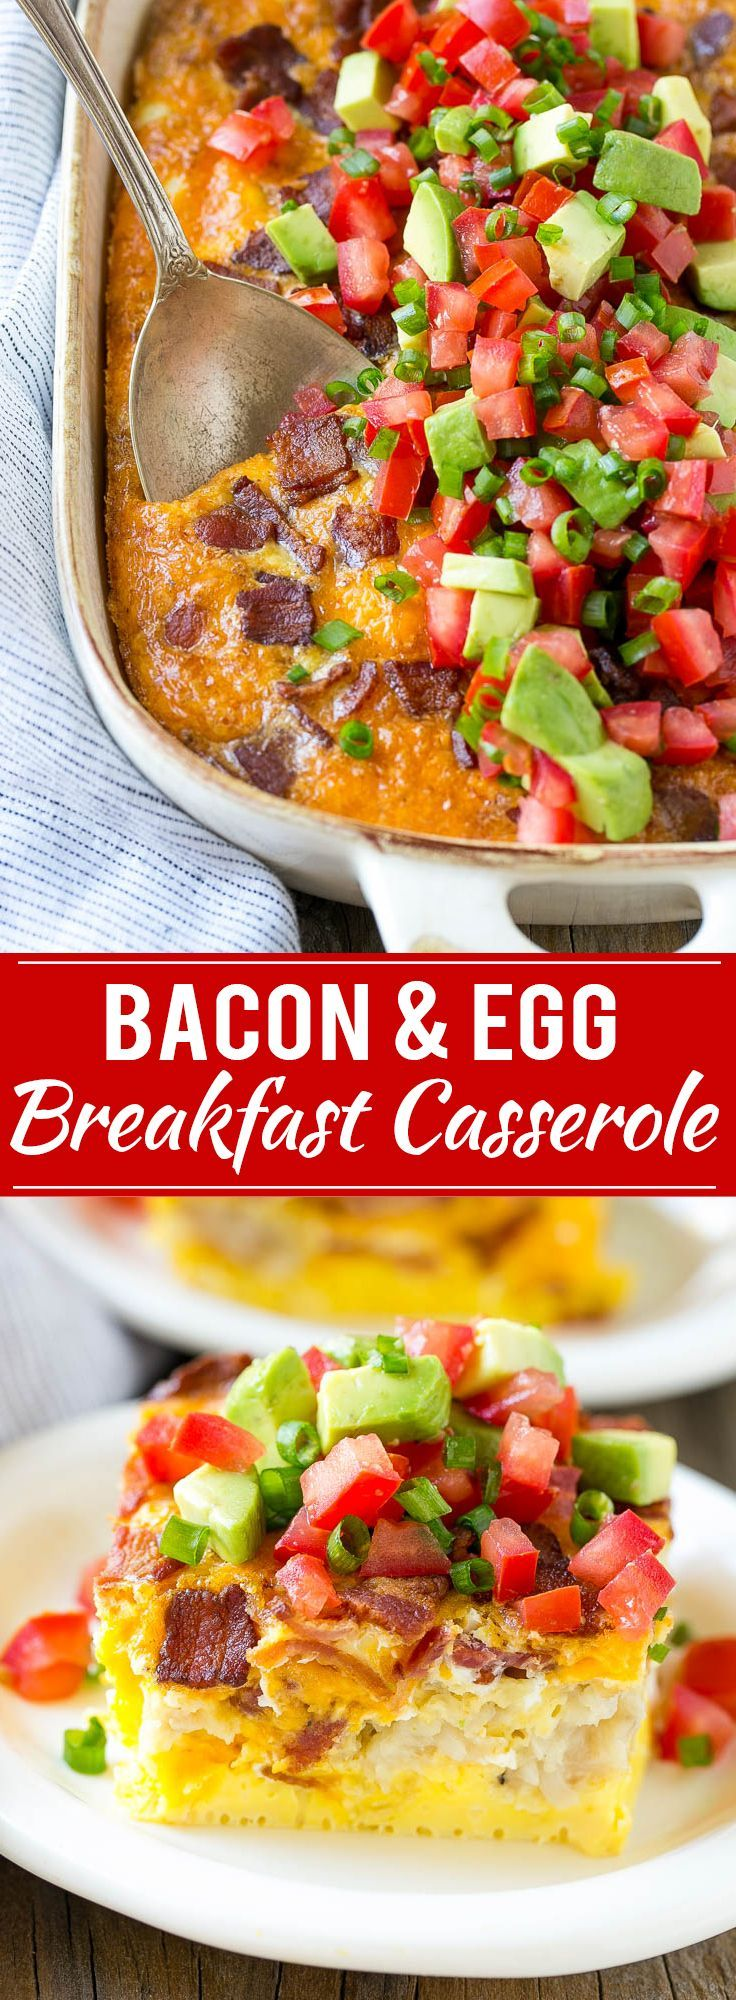 This breakfast casserole with bacon recipe is loaded with eggs, cheese and bacon, then finished off with an avocado and tomato topping. The perfect hearty breakfast for any occasion! #greengiantswapins AD @GreenGiant